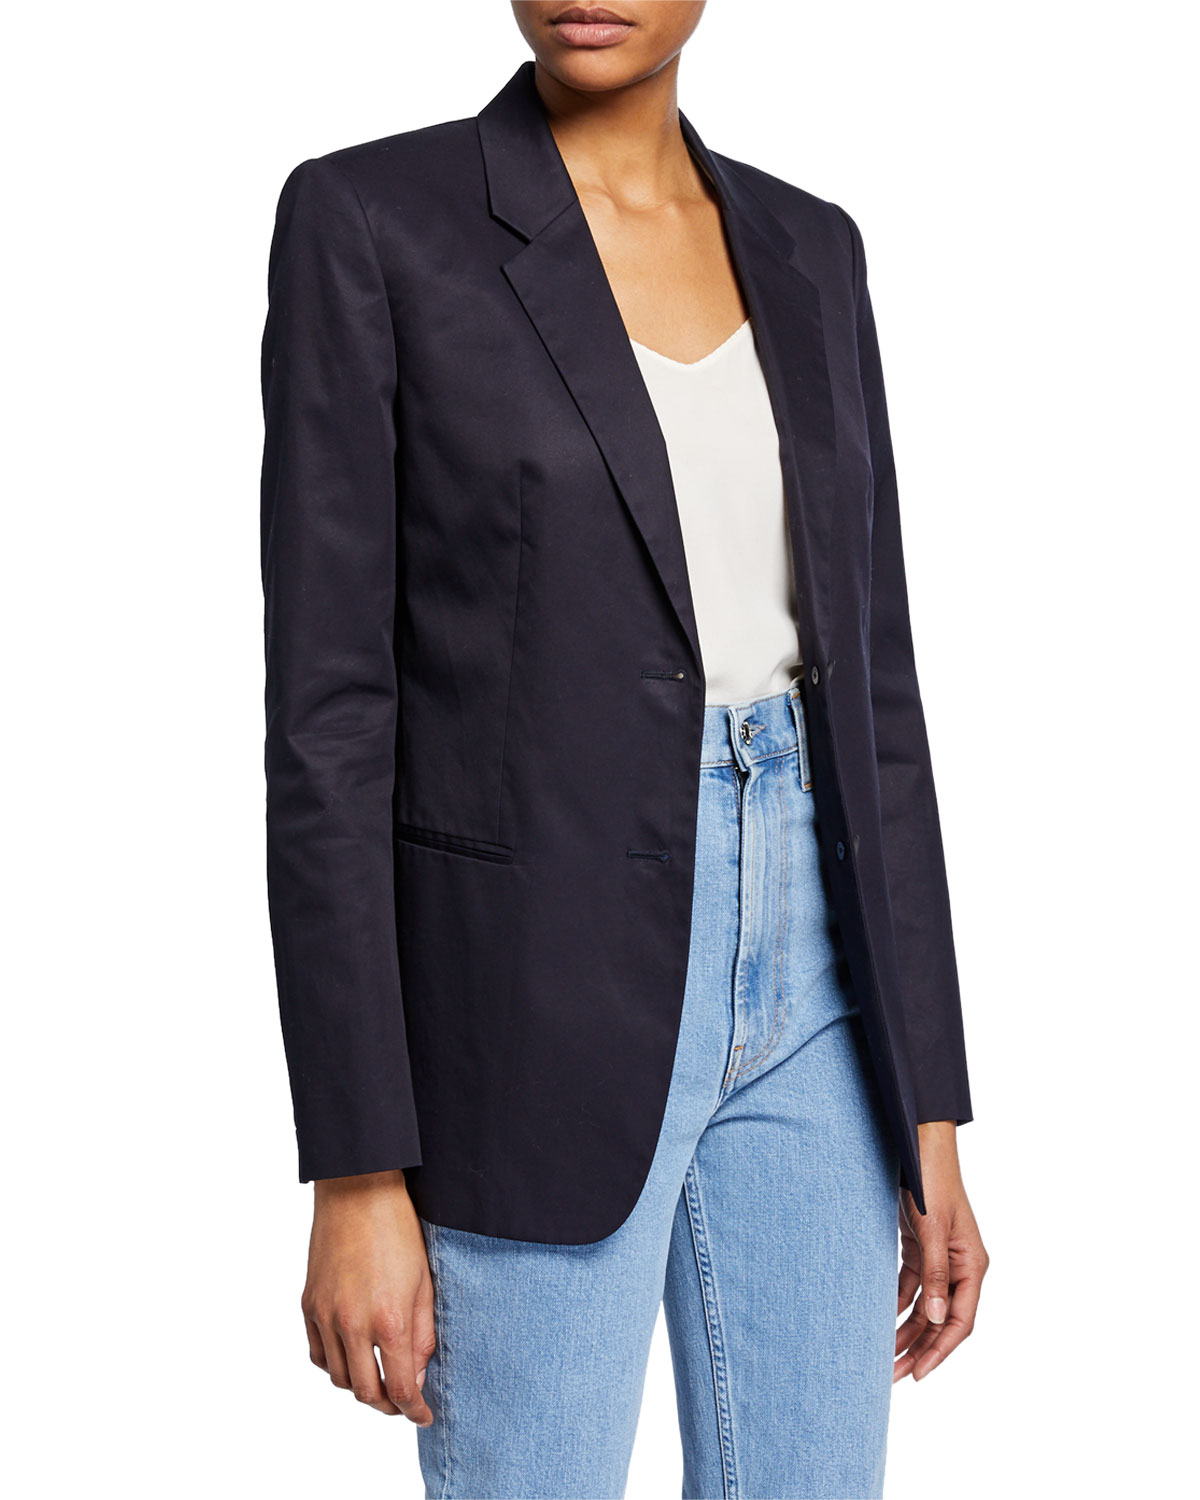 Helmut Lang Blazers RESIN COTTON TWILL TWO-BUTTON BLAZER